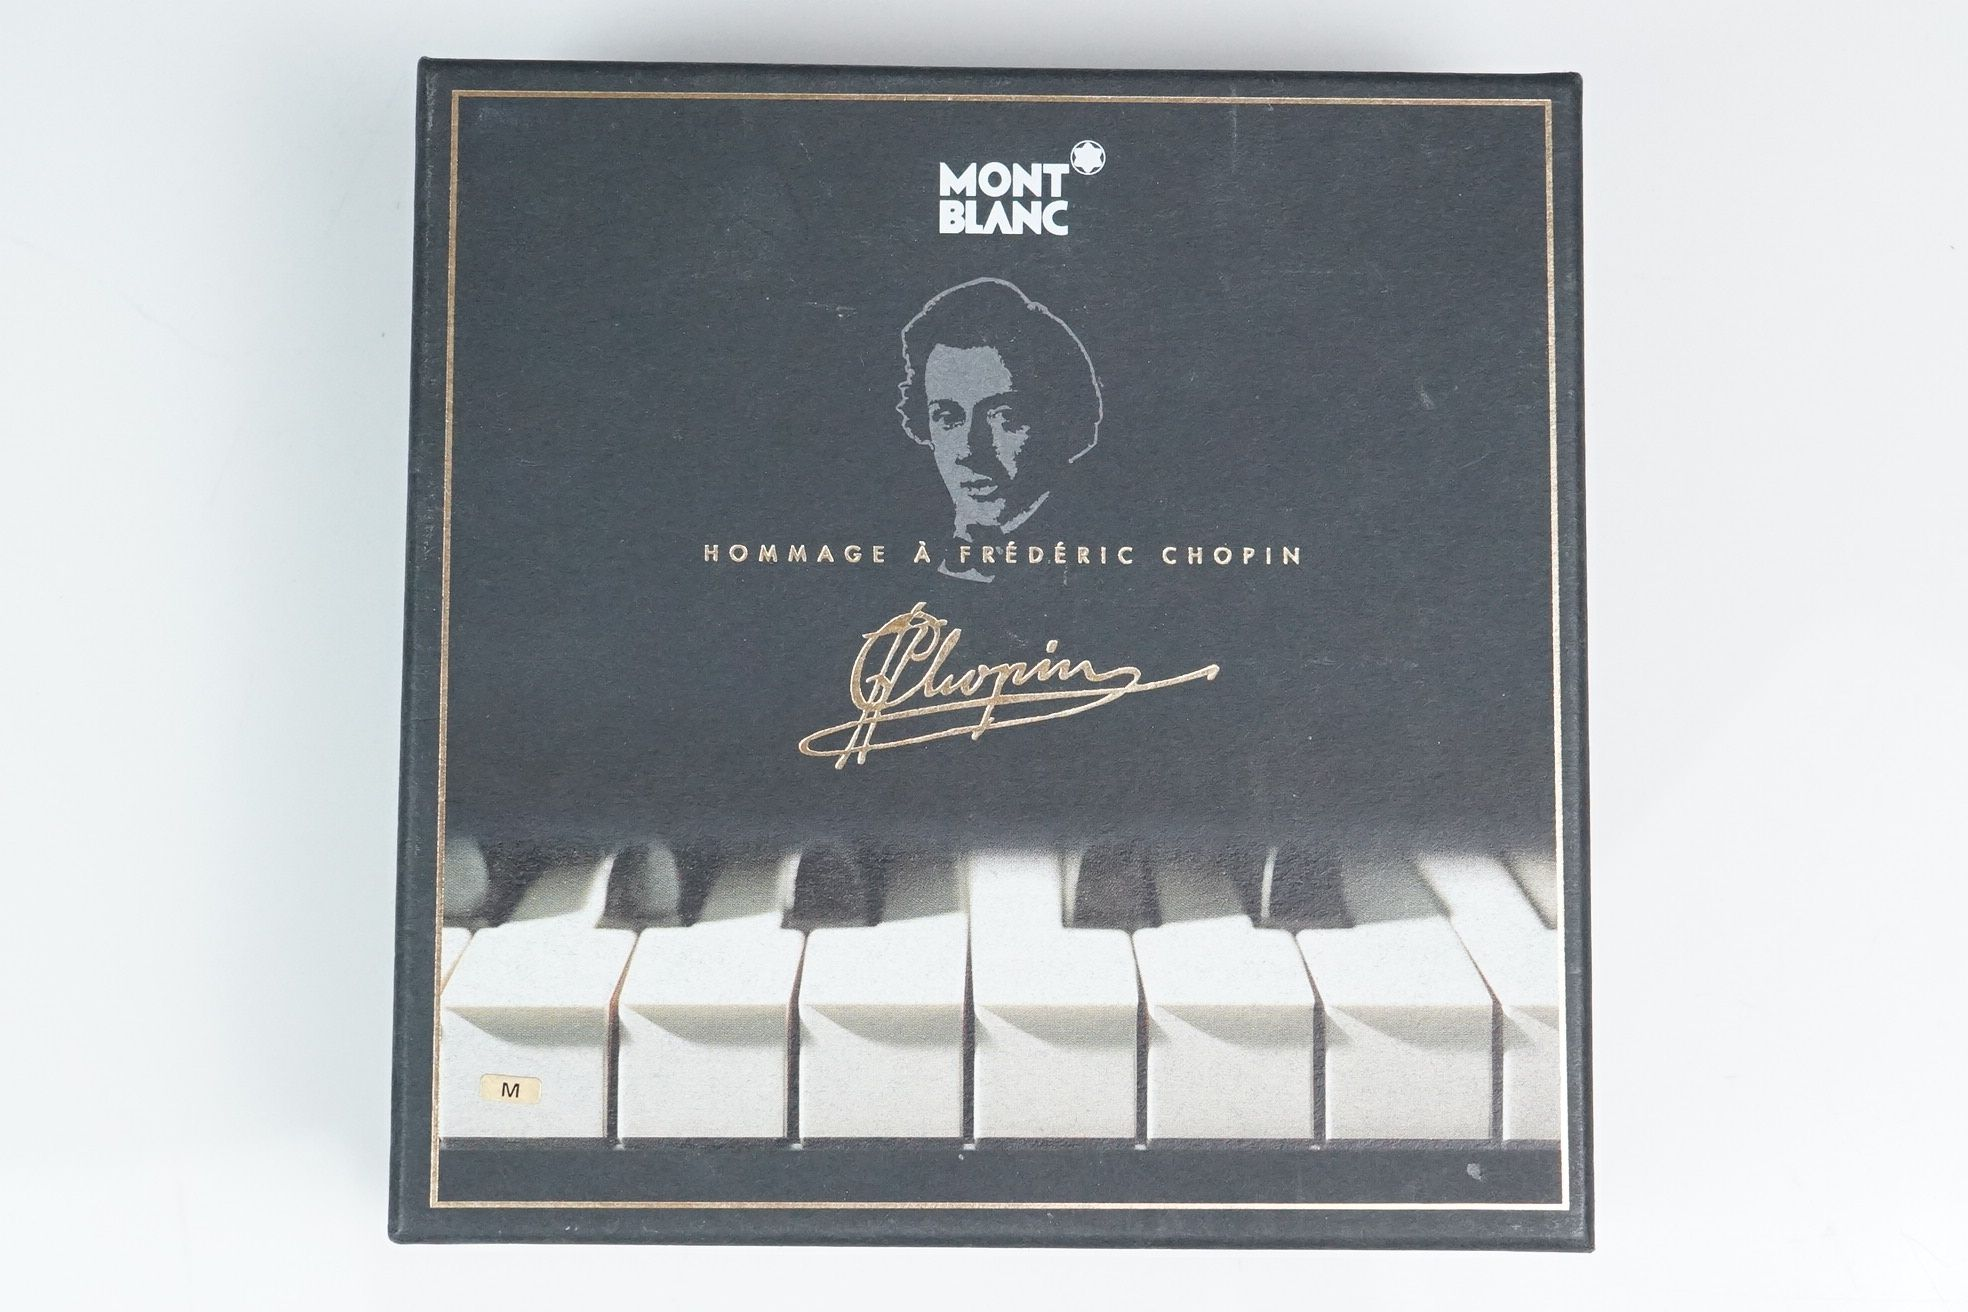 Mont Blanc Meisterstuck Hommage A Frederic Chopin fountain pen, model 145 M, with CD, service - Image 6 of 6